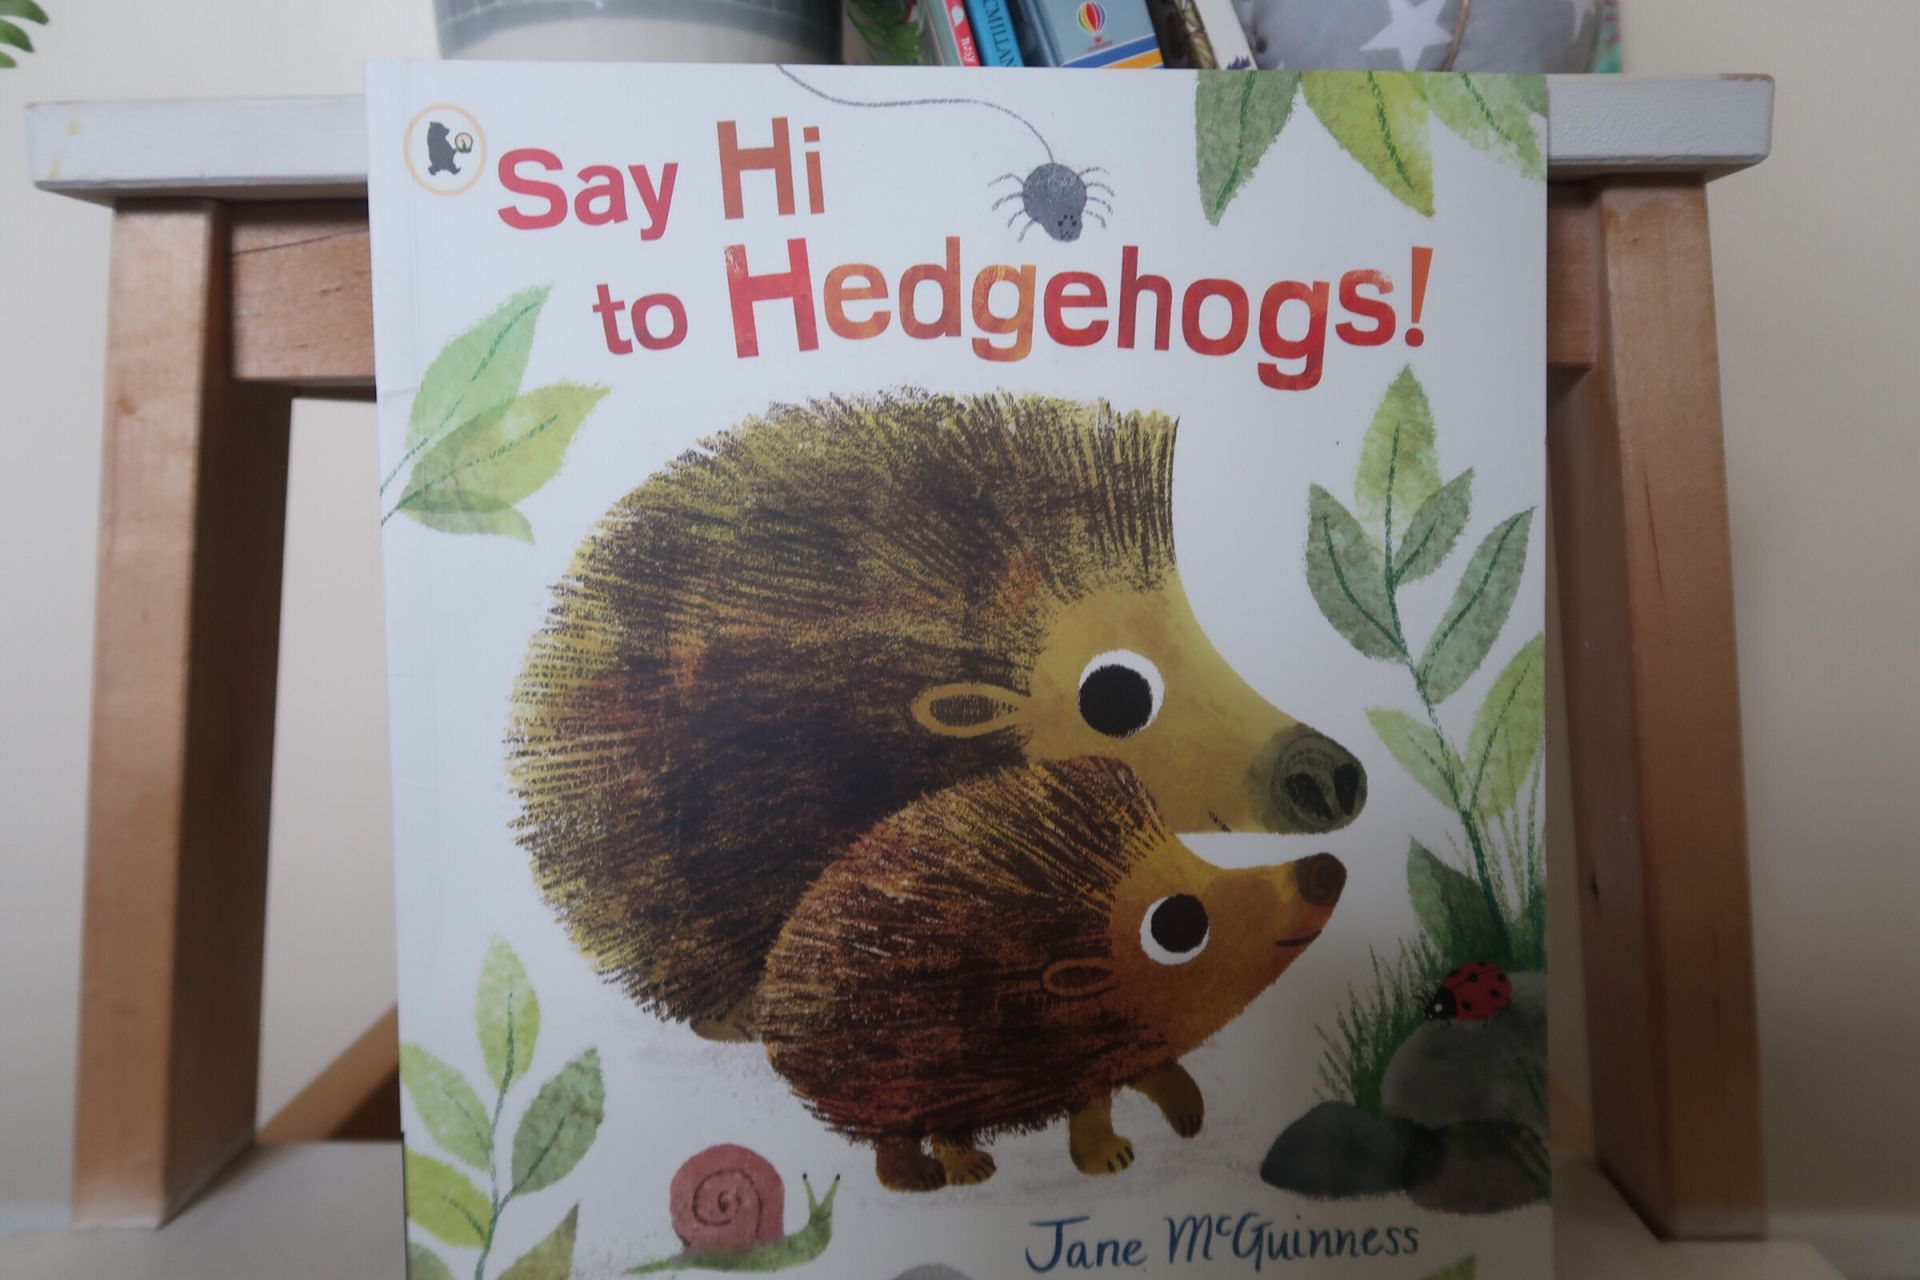 A hedgehog kids book